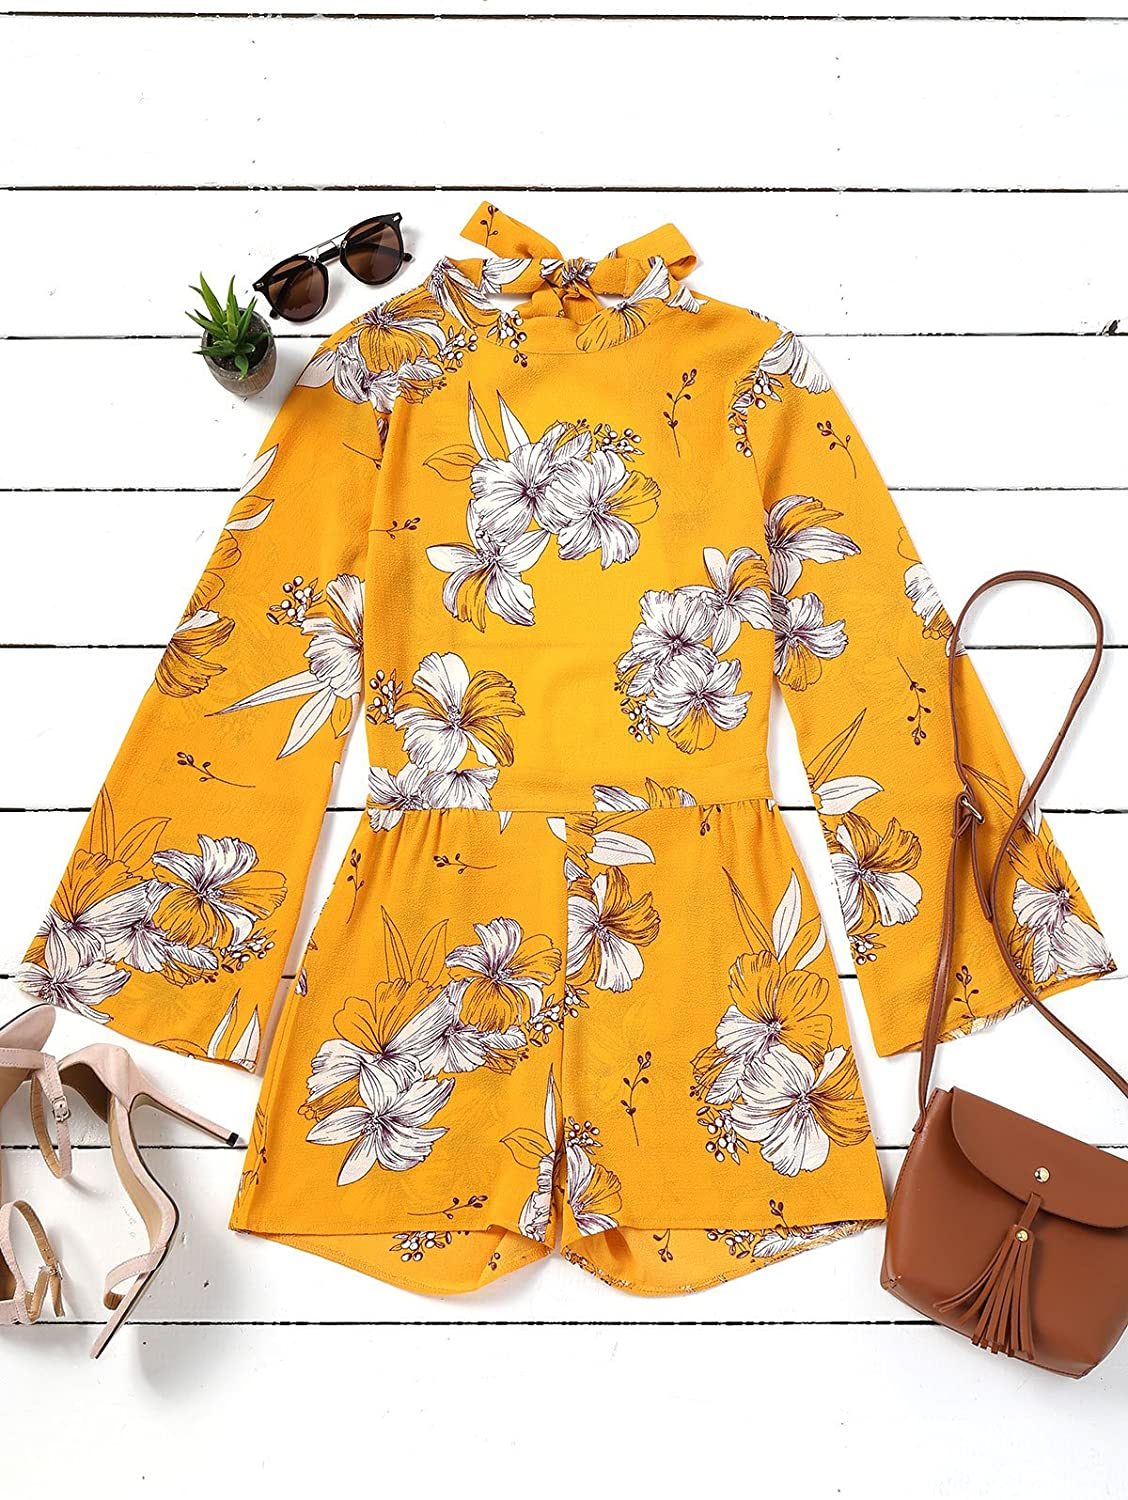 OppaaL Women Rompers Halter Neck Floral Print Backless Short Beach Boho Summer Jumpsuits with Long Sleeves